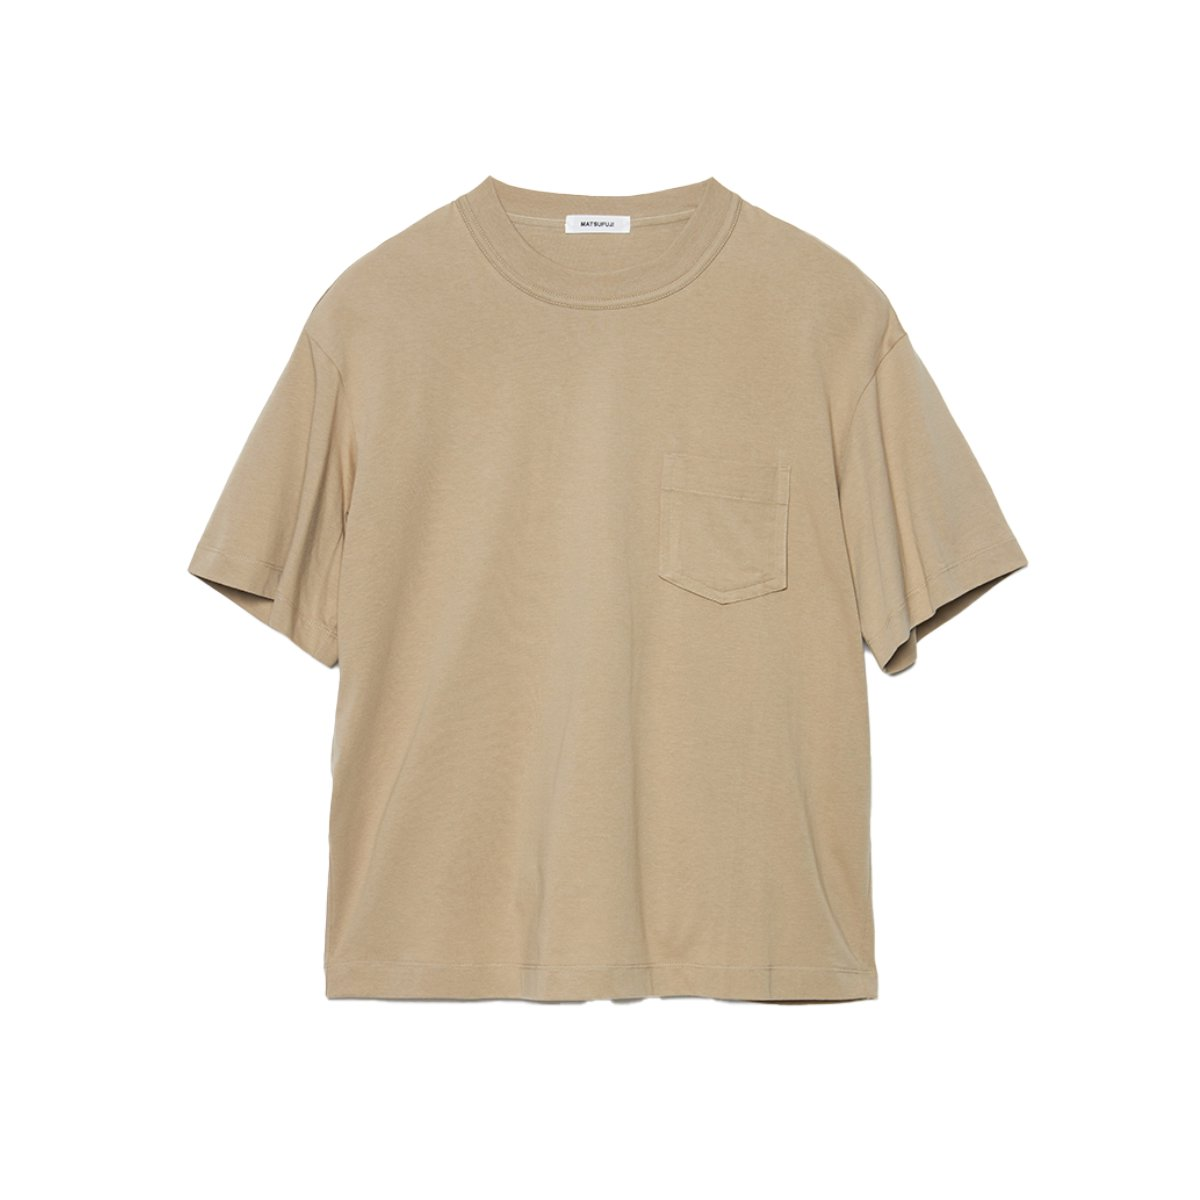 <img class='new_mark_img1' src='https://img.shop-pro.jp/img/new/icons5.gif' style='border:none;display:inline;margin:0px;padding:0px;width:auto;' />Short Sleeve Pocket T-shirt / BEIGE